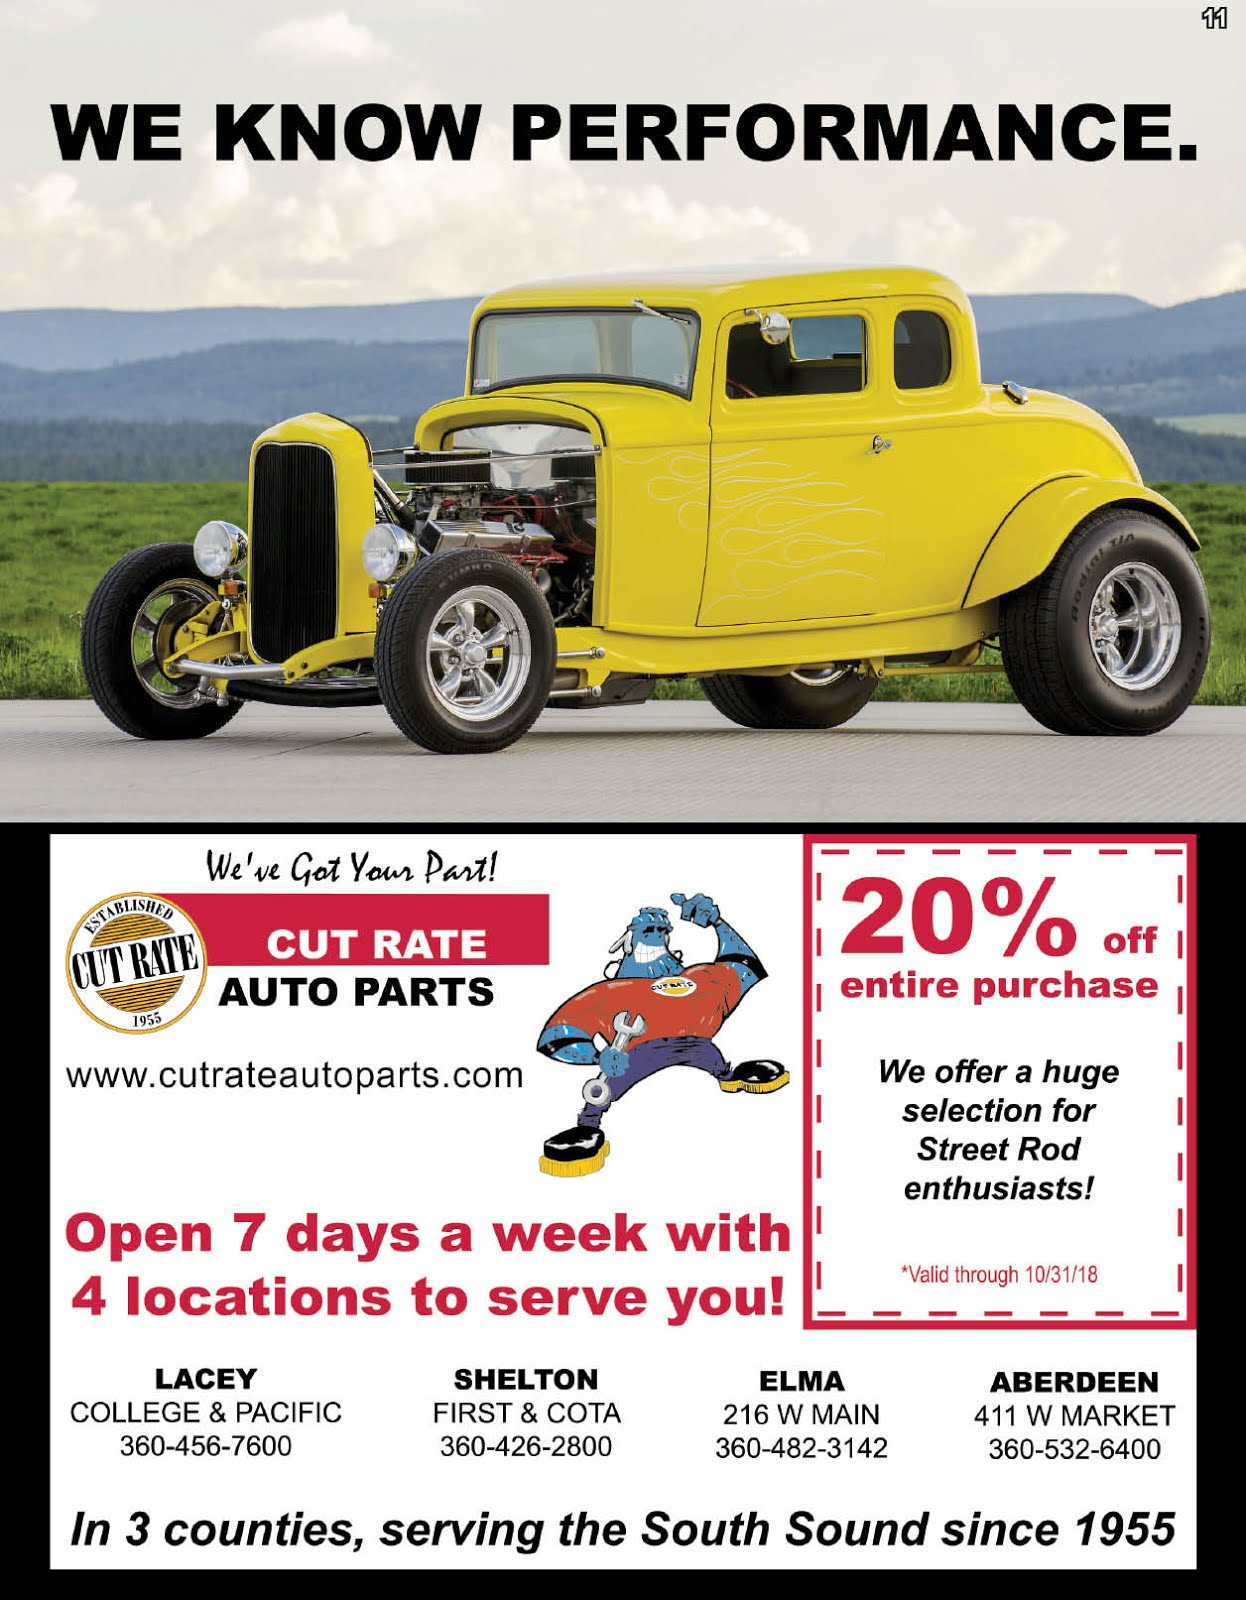 Cut Rate Auto Parts 20% Off Entire Purchase!!